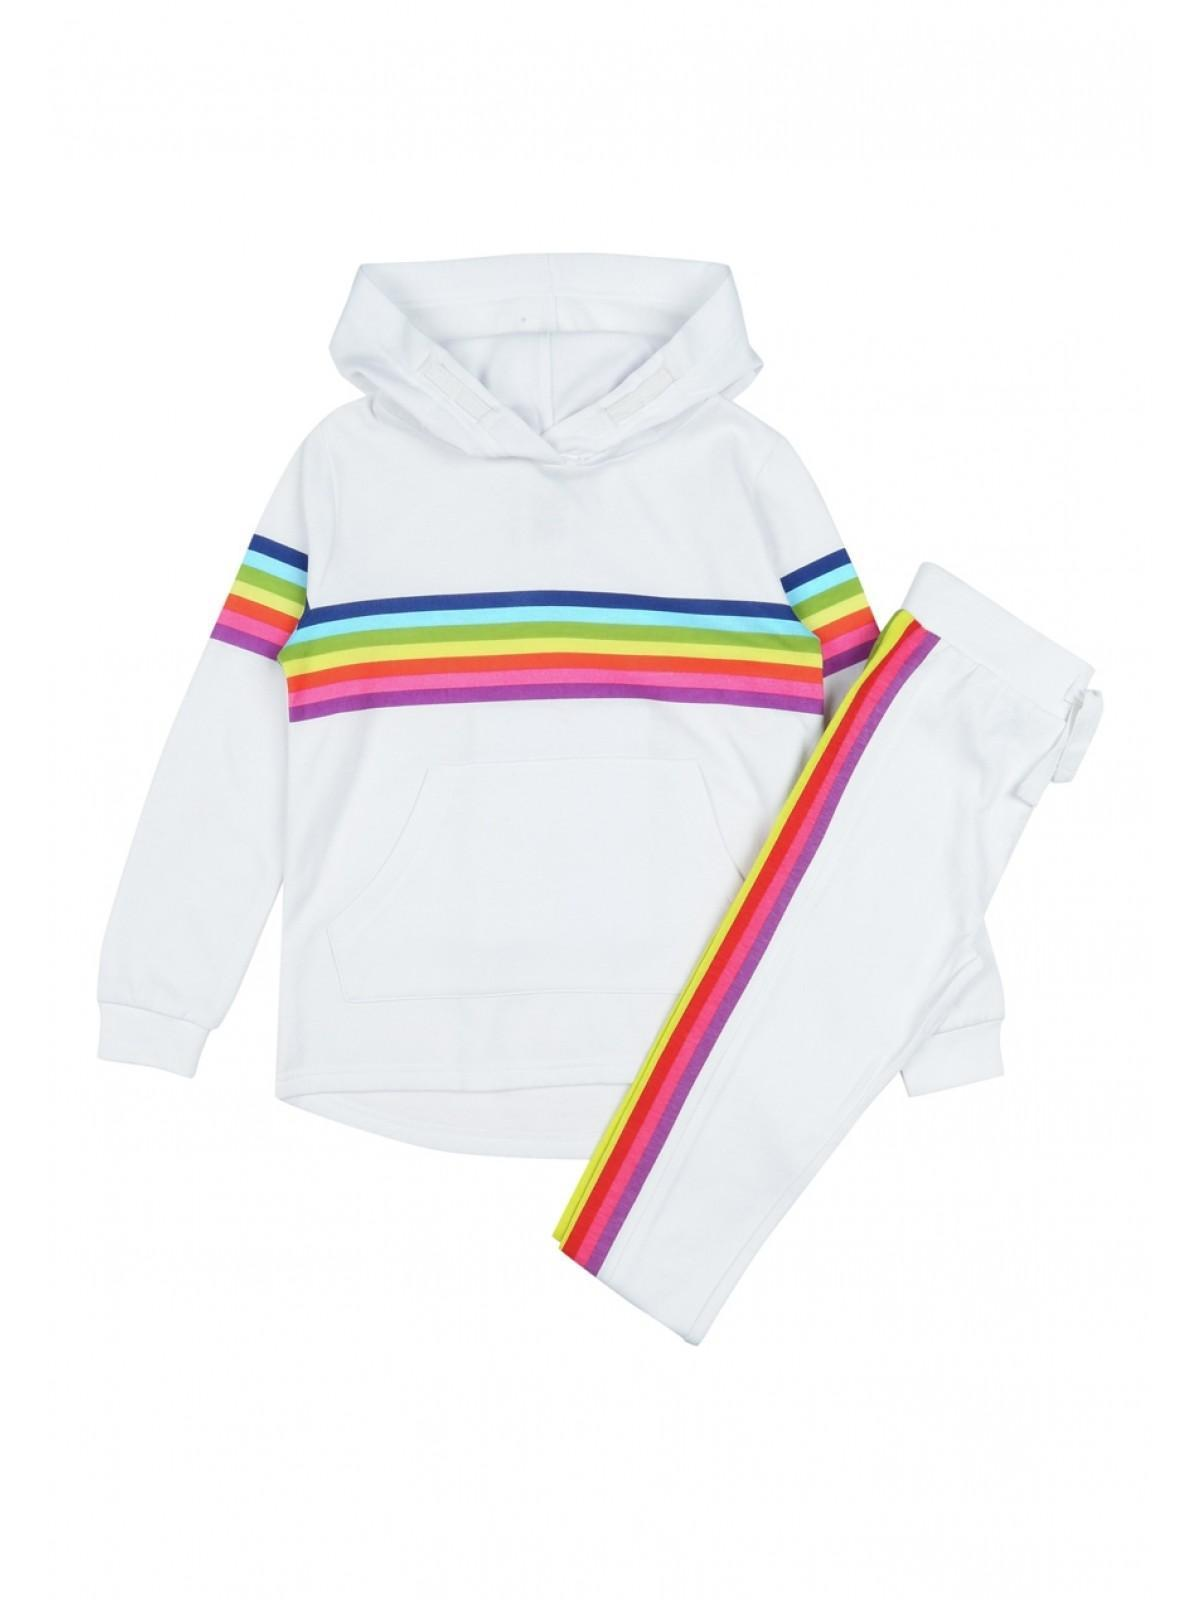 7be26e99f31c5 Home; Girls Rainbow Hoody Lounge Set. Back. PreviousNext